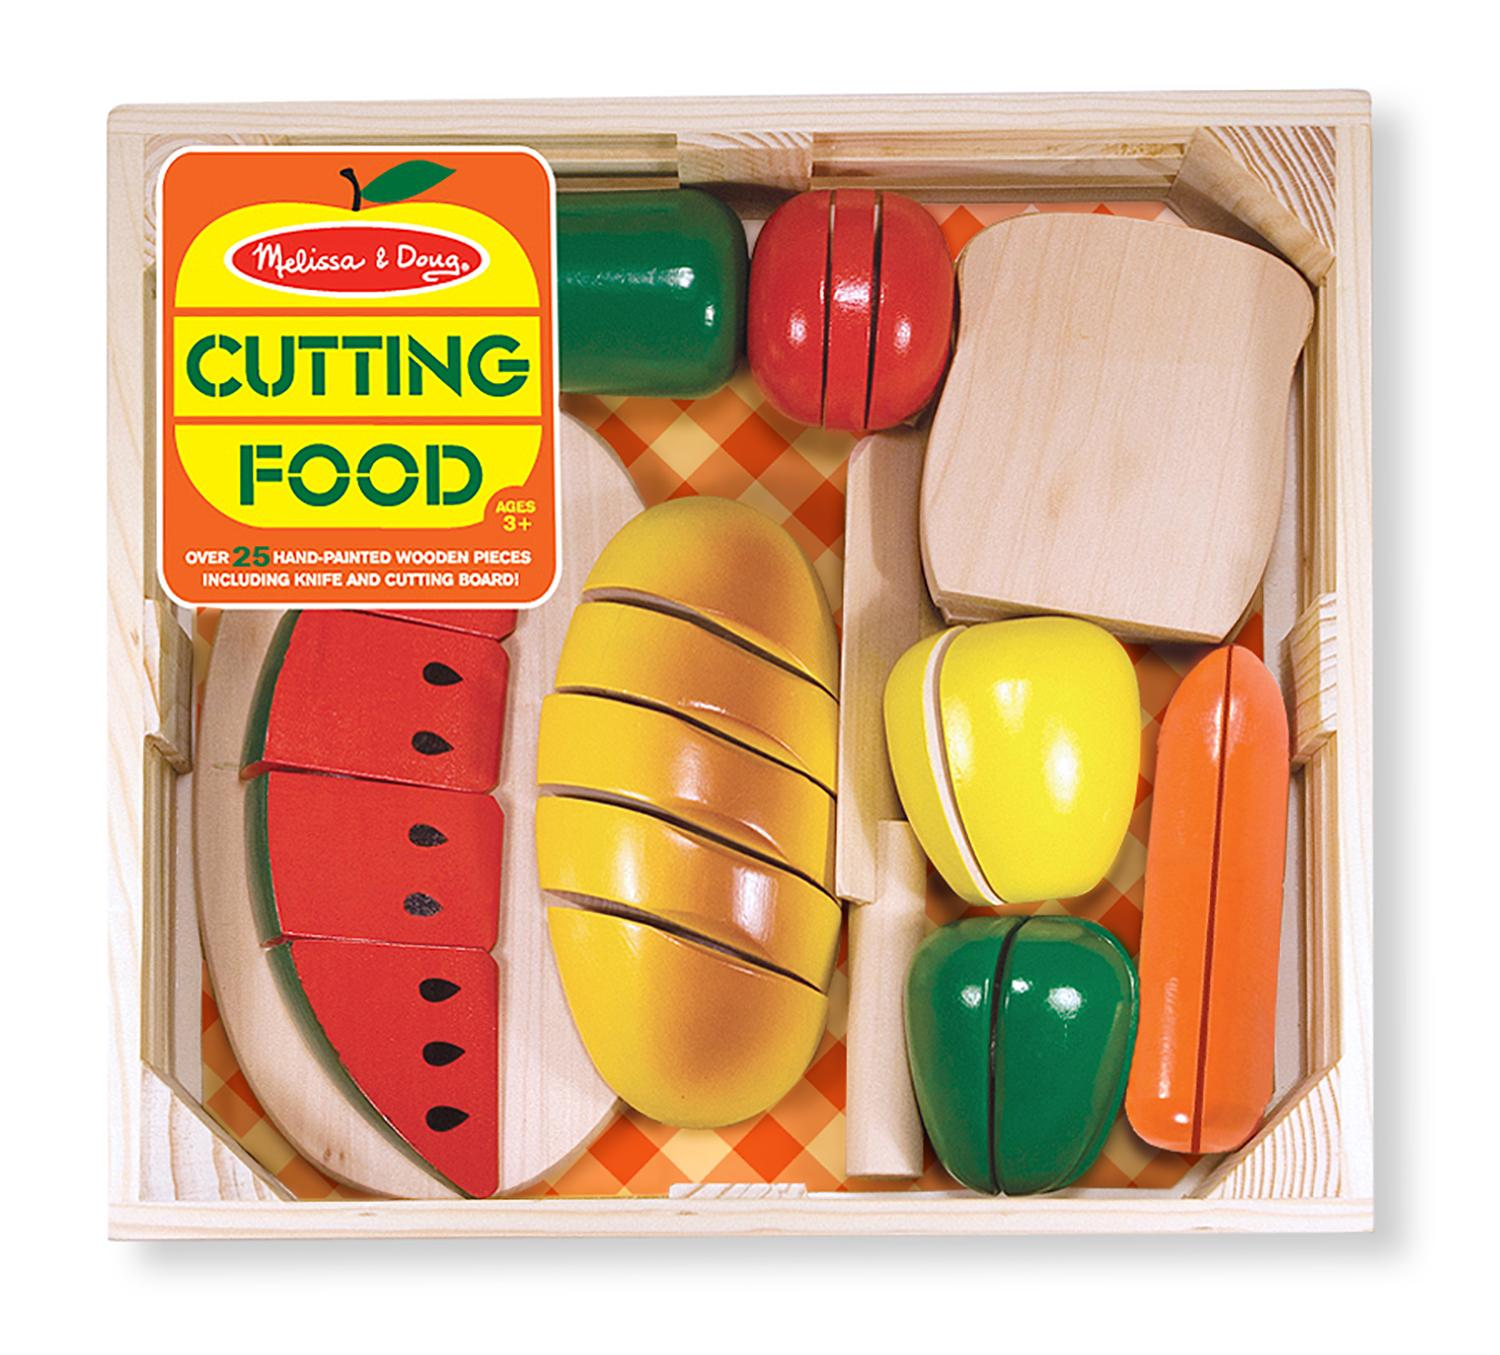 Melissa And Doug Wooden Kitchen: Amazon.com: Melissa & Doug Cutting Food Wooden Play Food